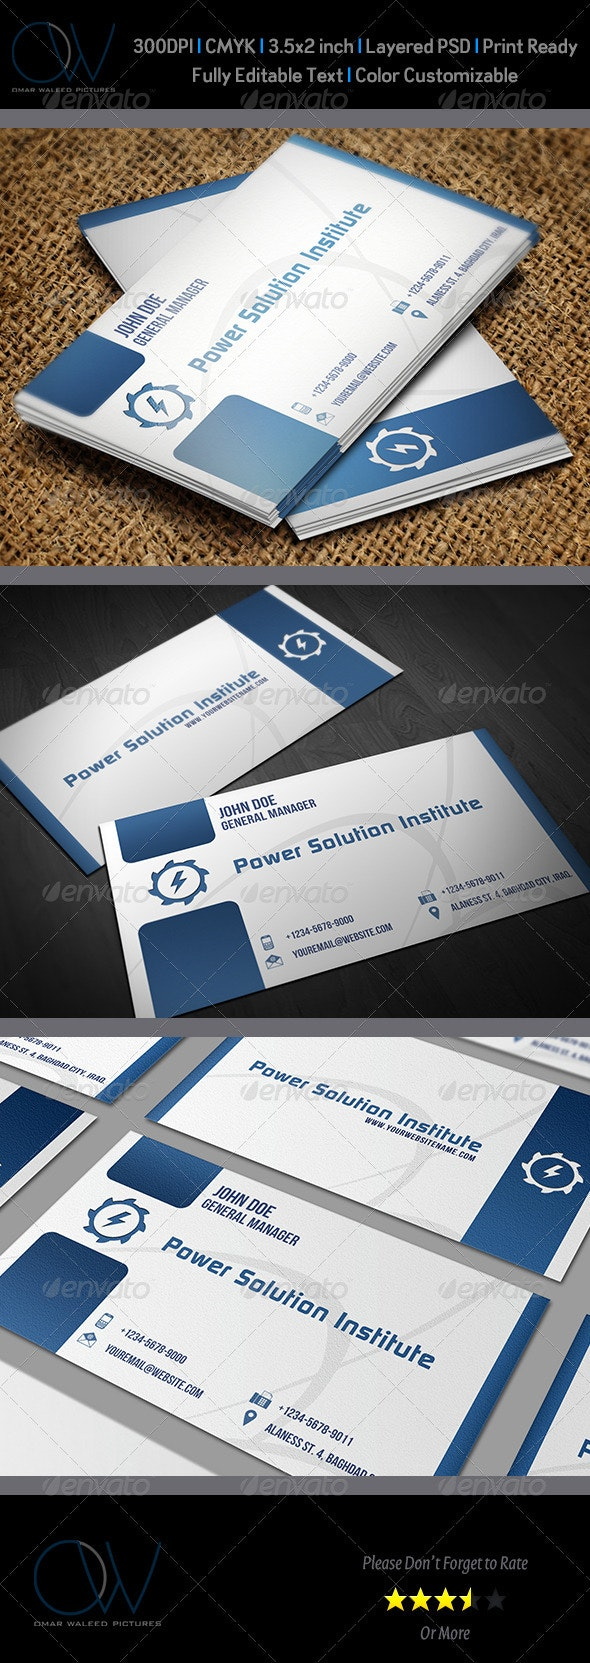 Classic Business Card Vol.5 - Corporate Business Cards